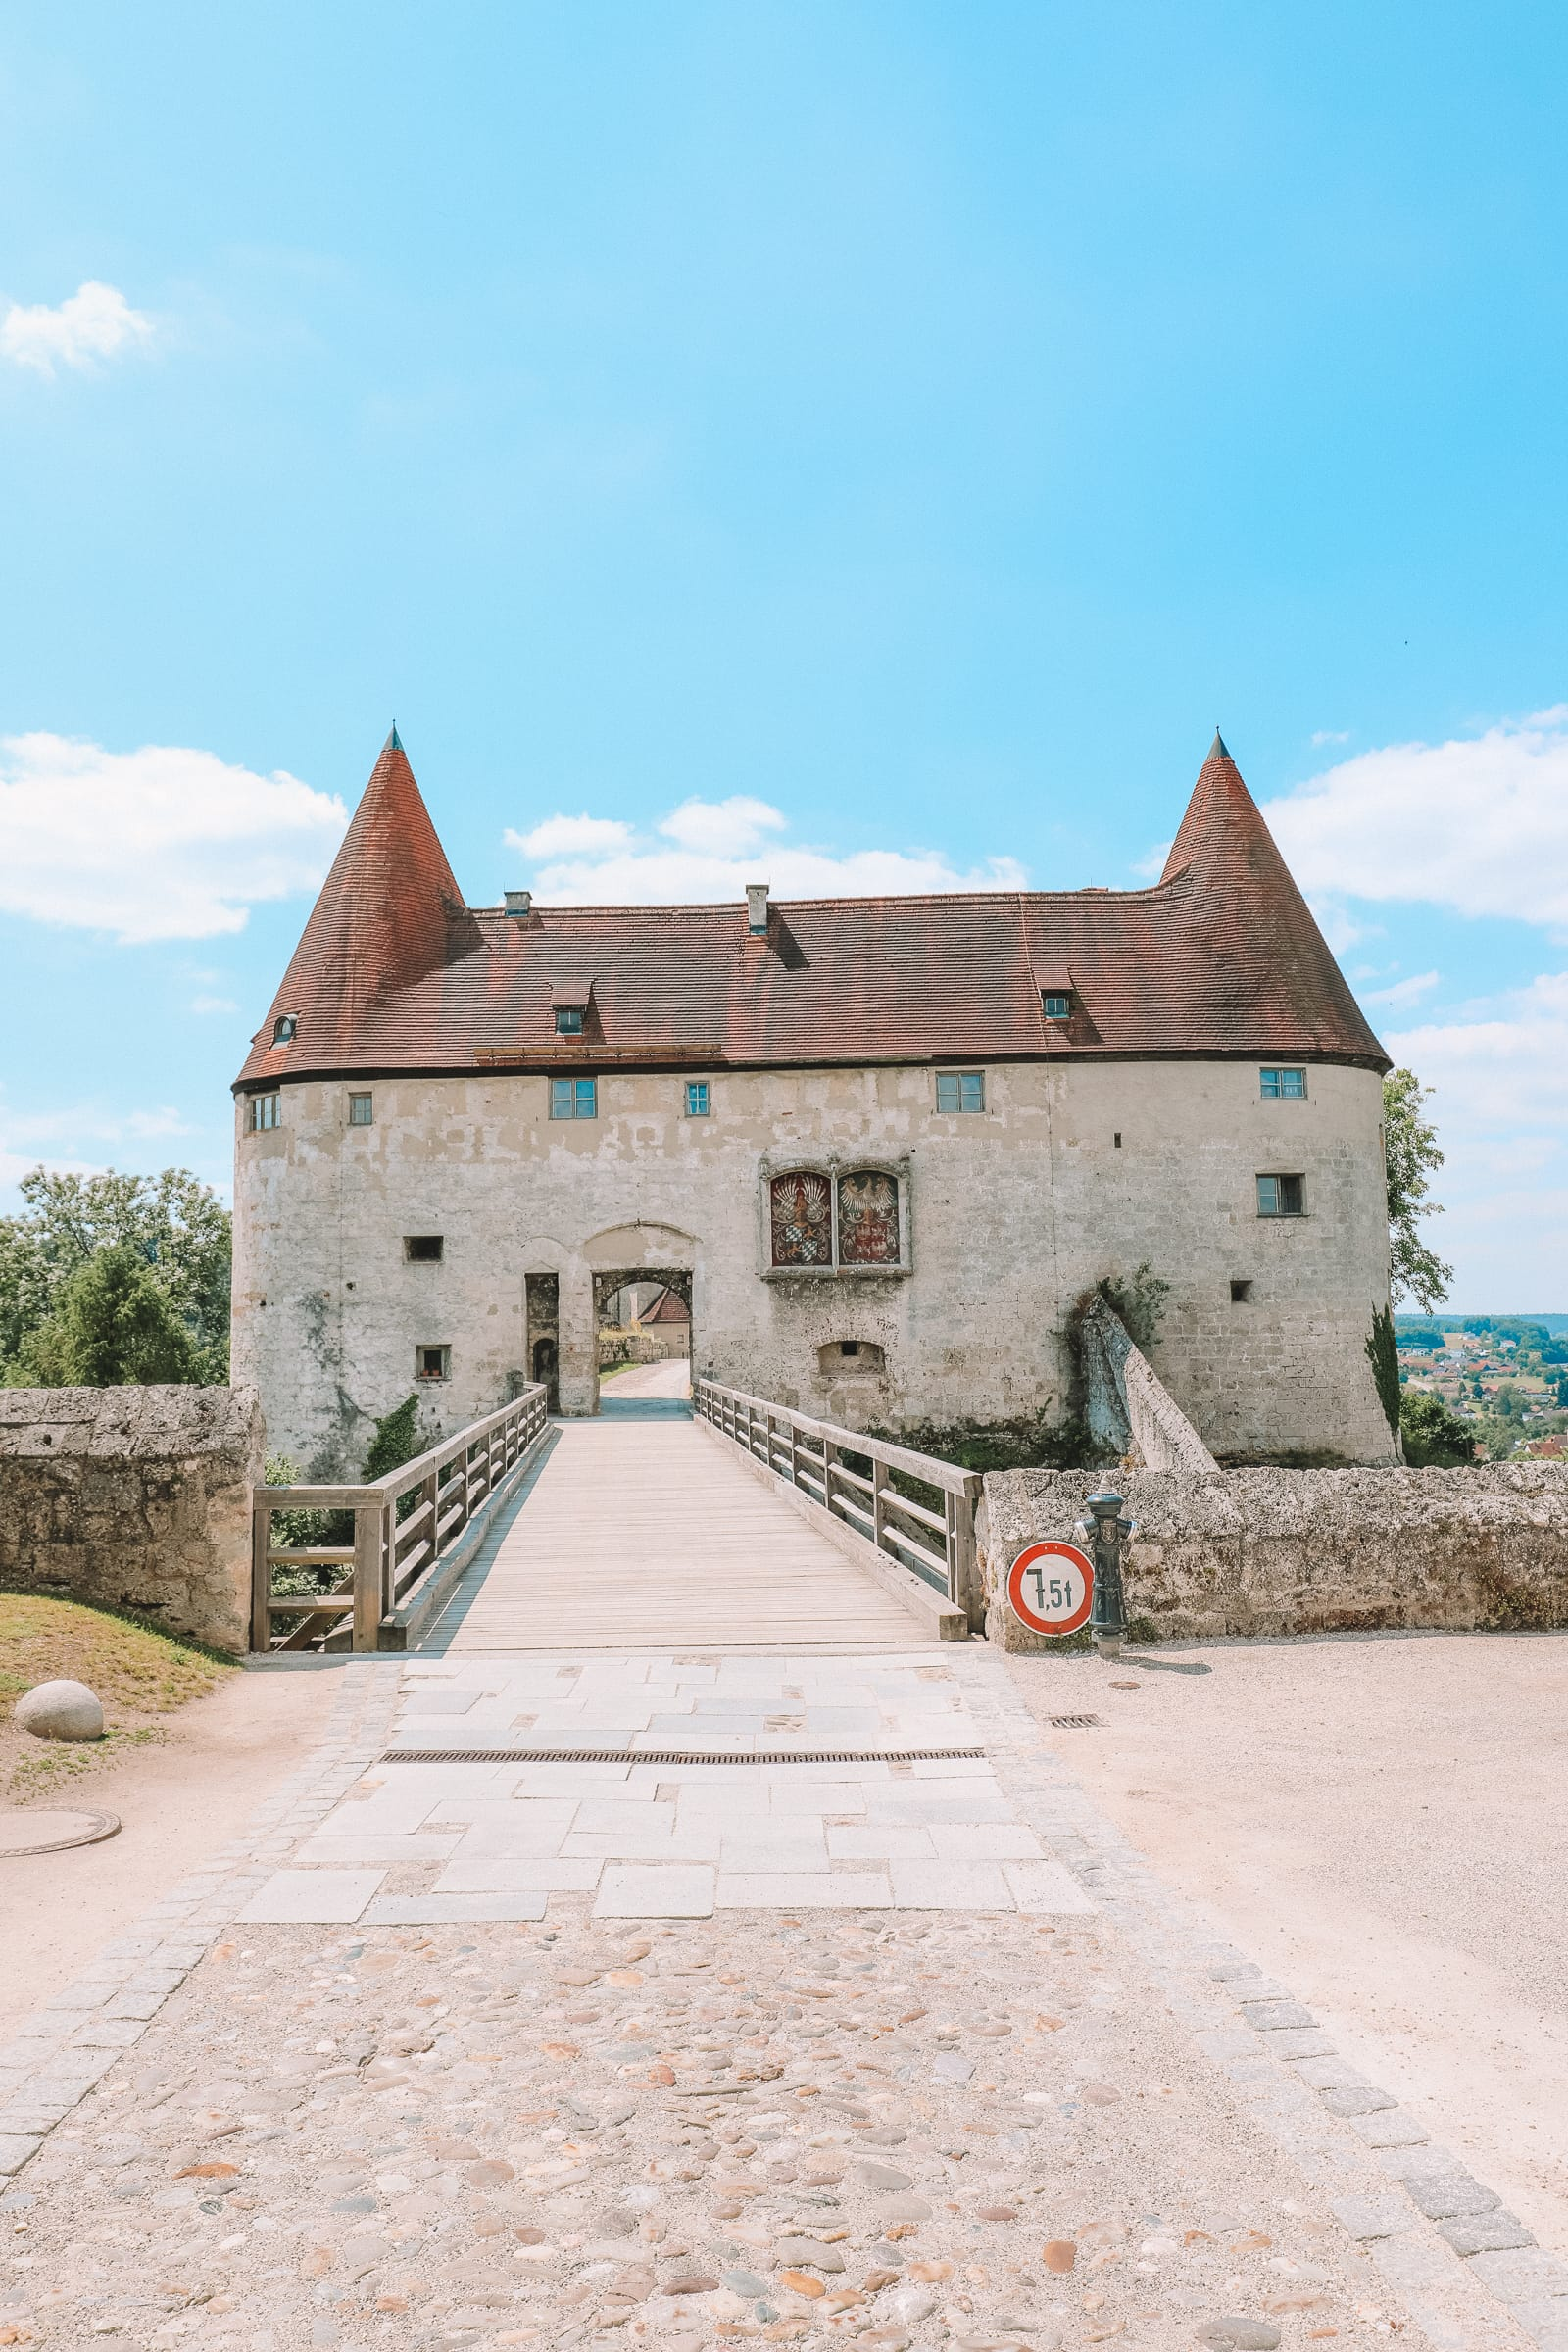 Burghausen Castle - The Longest Castle In The Entire World! (60)